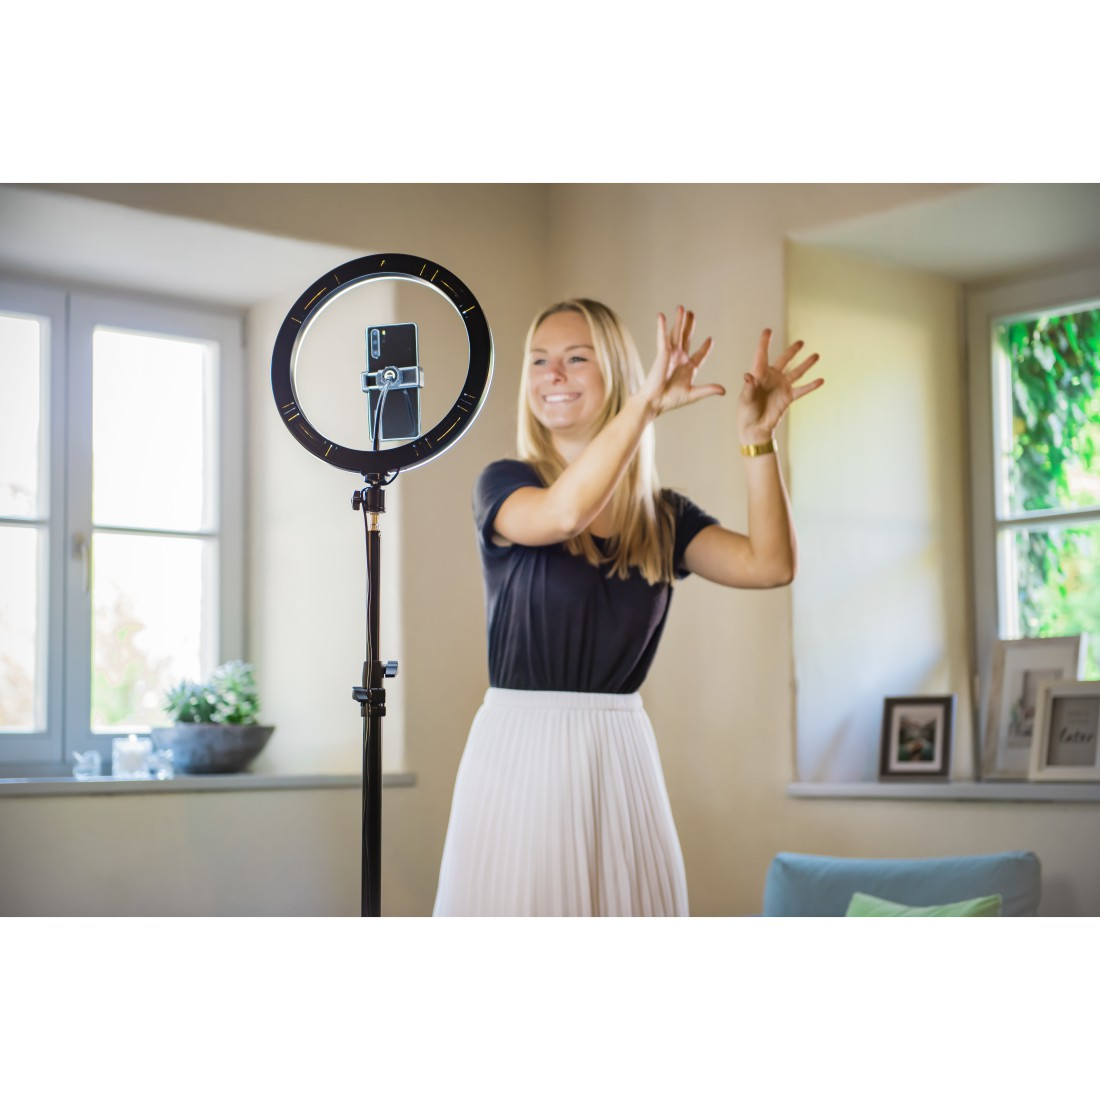 "awx8 High-Res Appliance 8 - Hama, ""SpotLight Steady 120"" LED Ring Light, Set for Smartphone, Tripod, 12"""